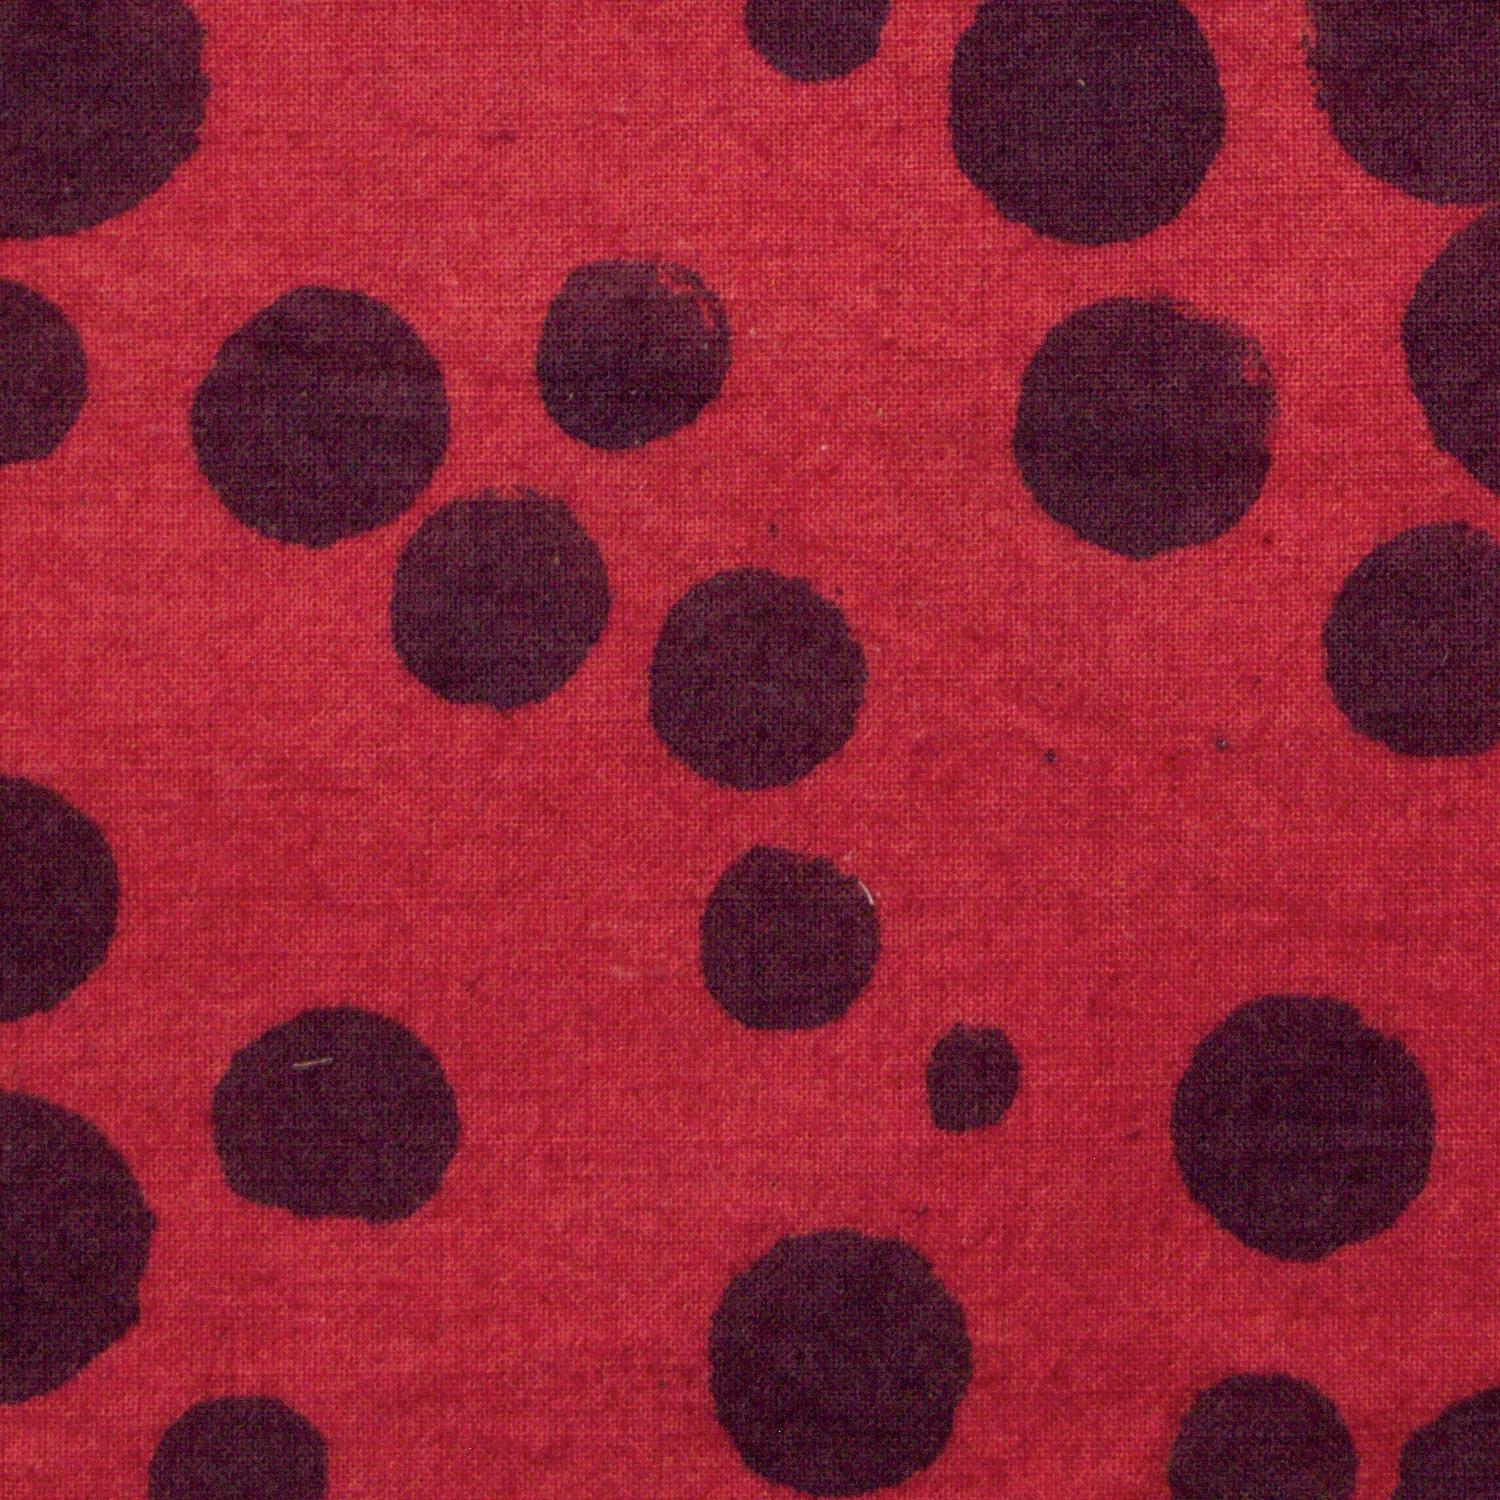 100% Block-Printed Cotton Fabric From India- Ajrak - Alizarin Black Dots Print - Close Up